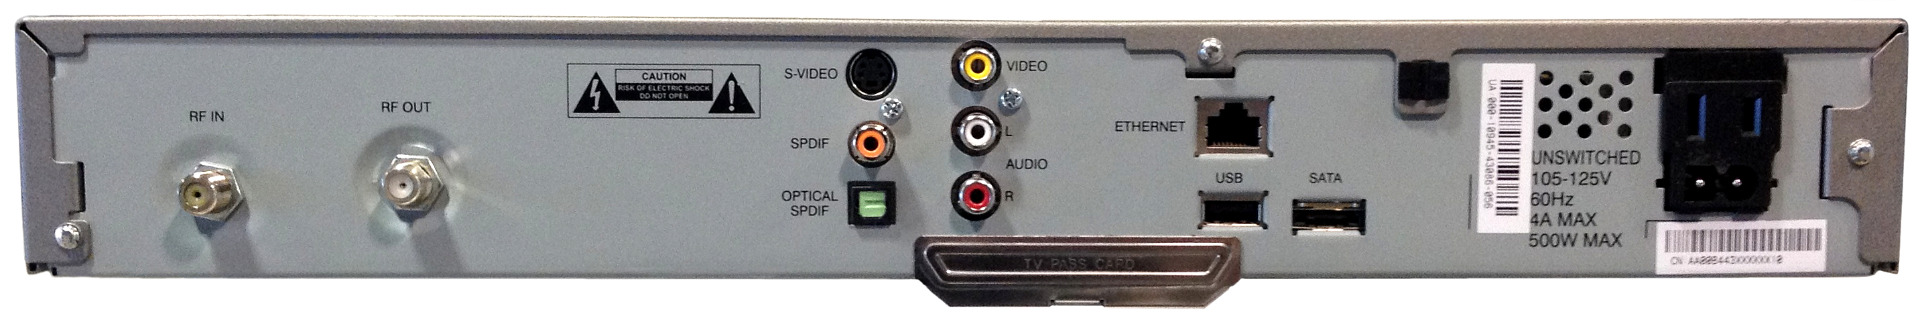 Motorola DCT3080 - Cable Box Rear